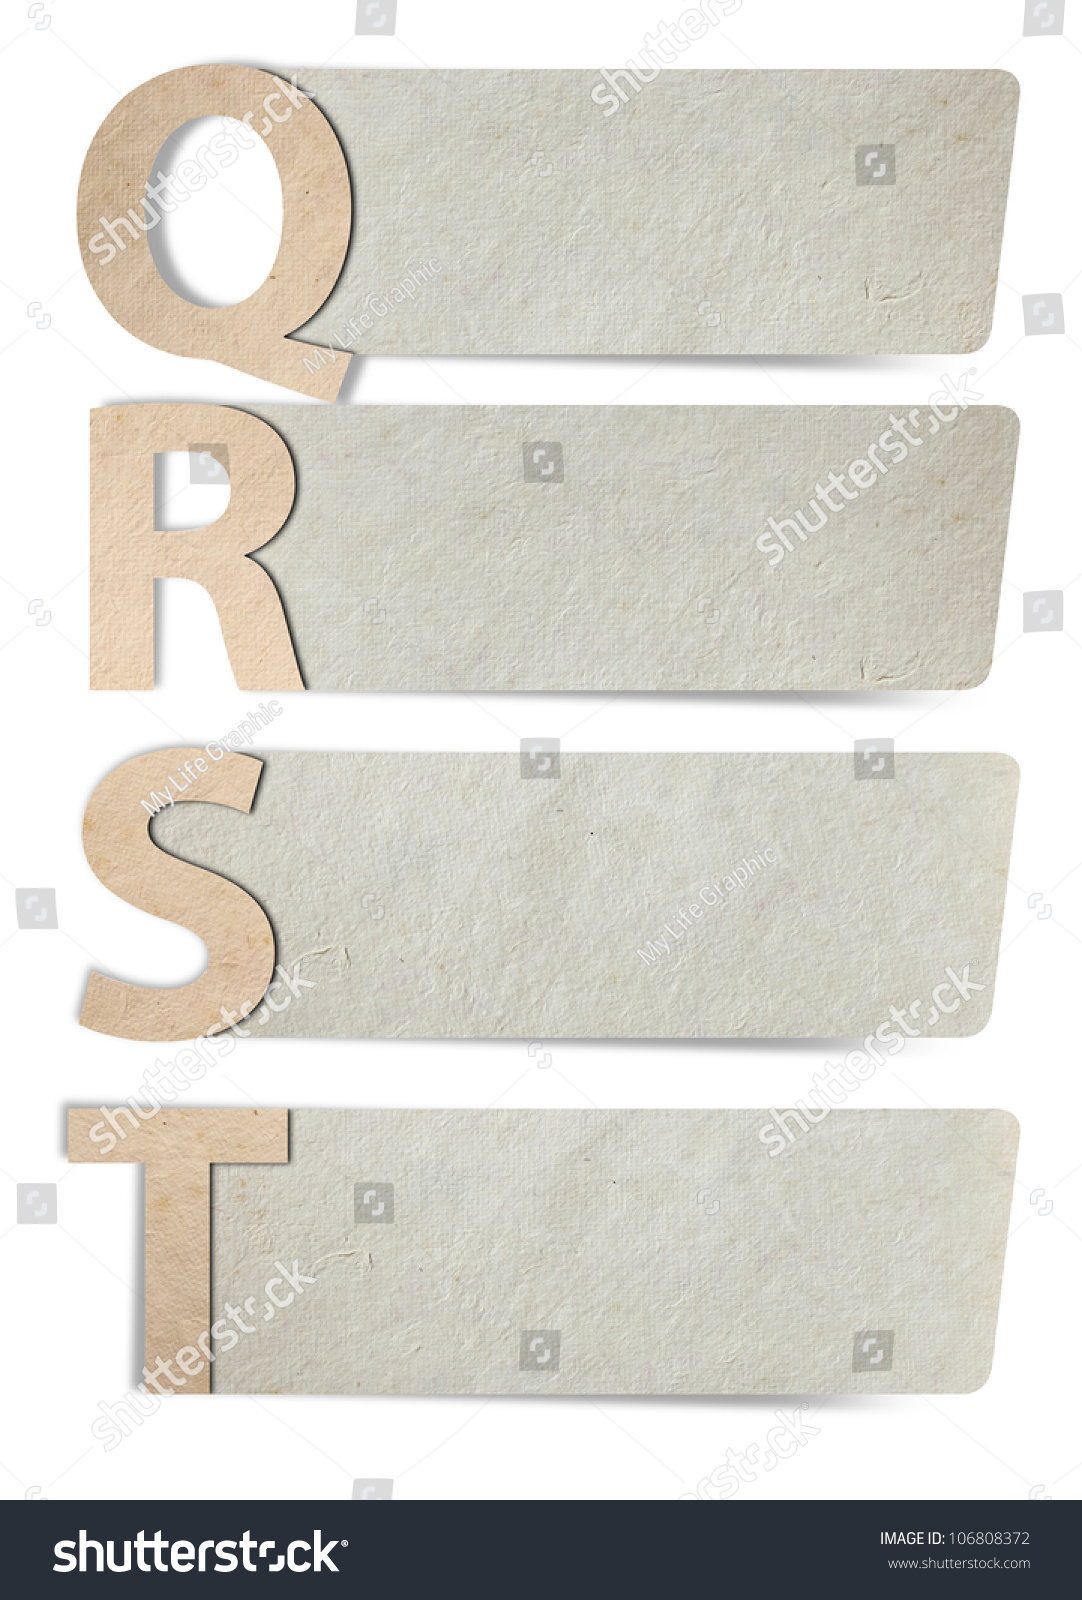 alphabet letters paper paper banners isolated stock photo 106808372